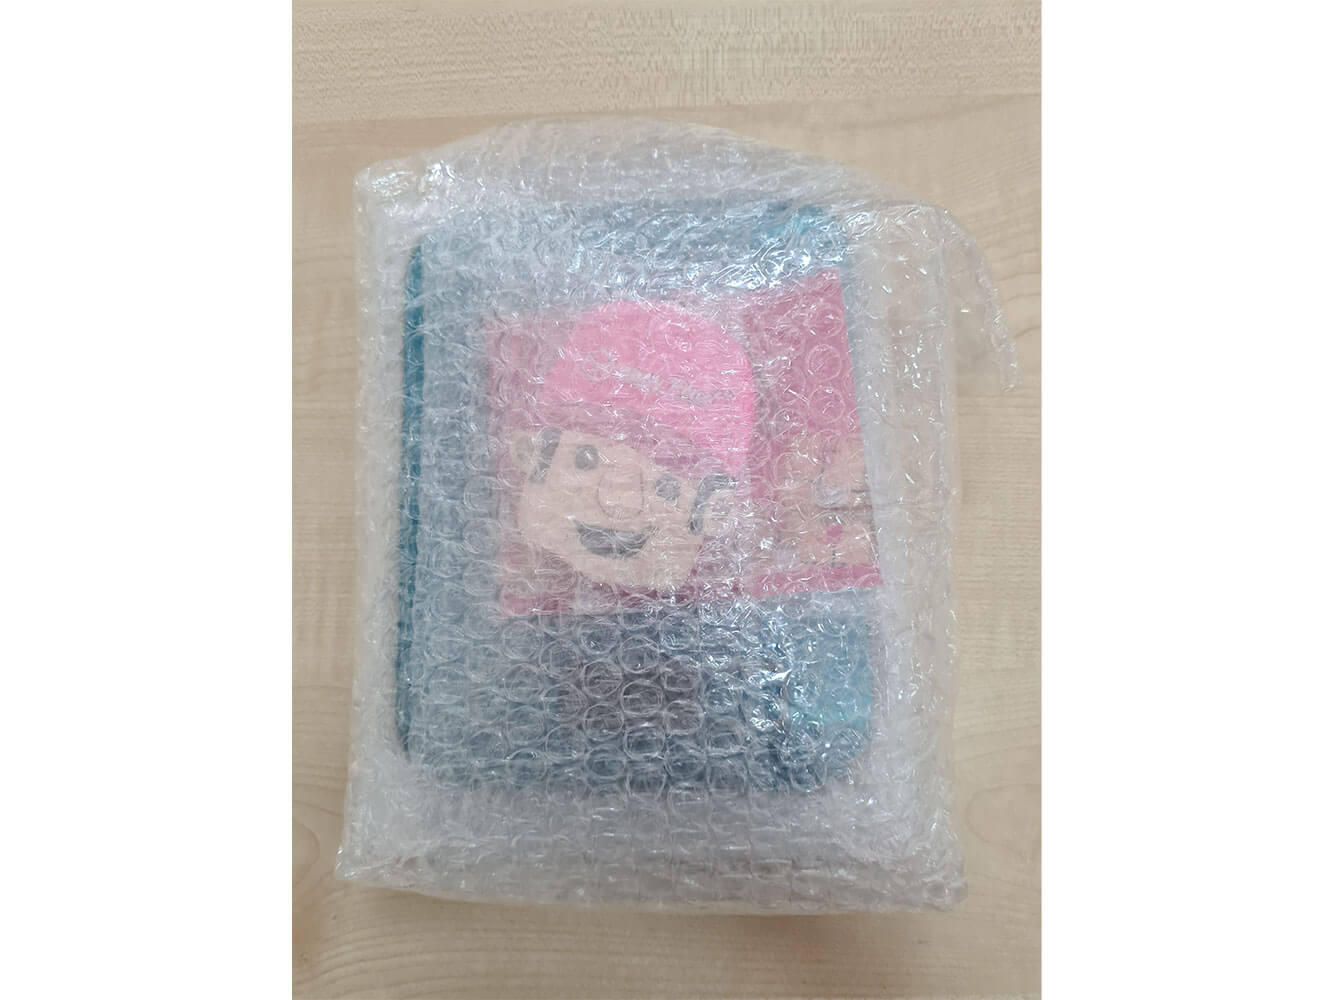 Parcel Packaging 1